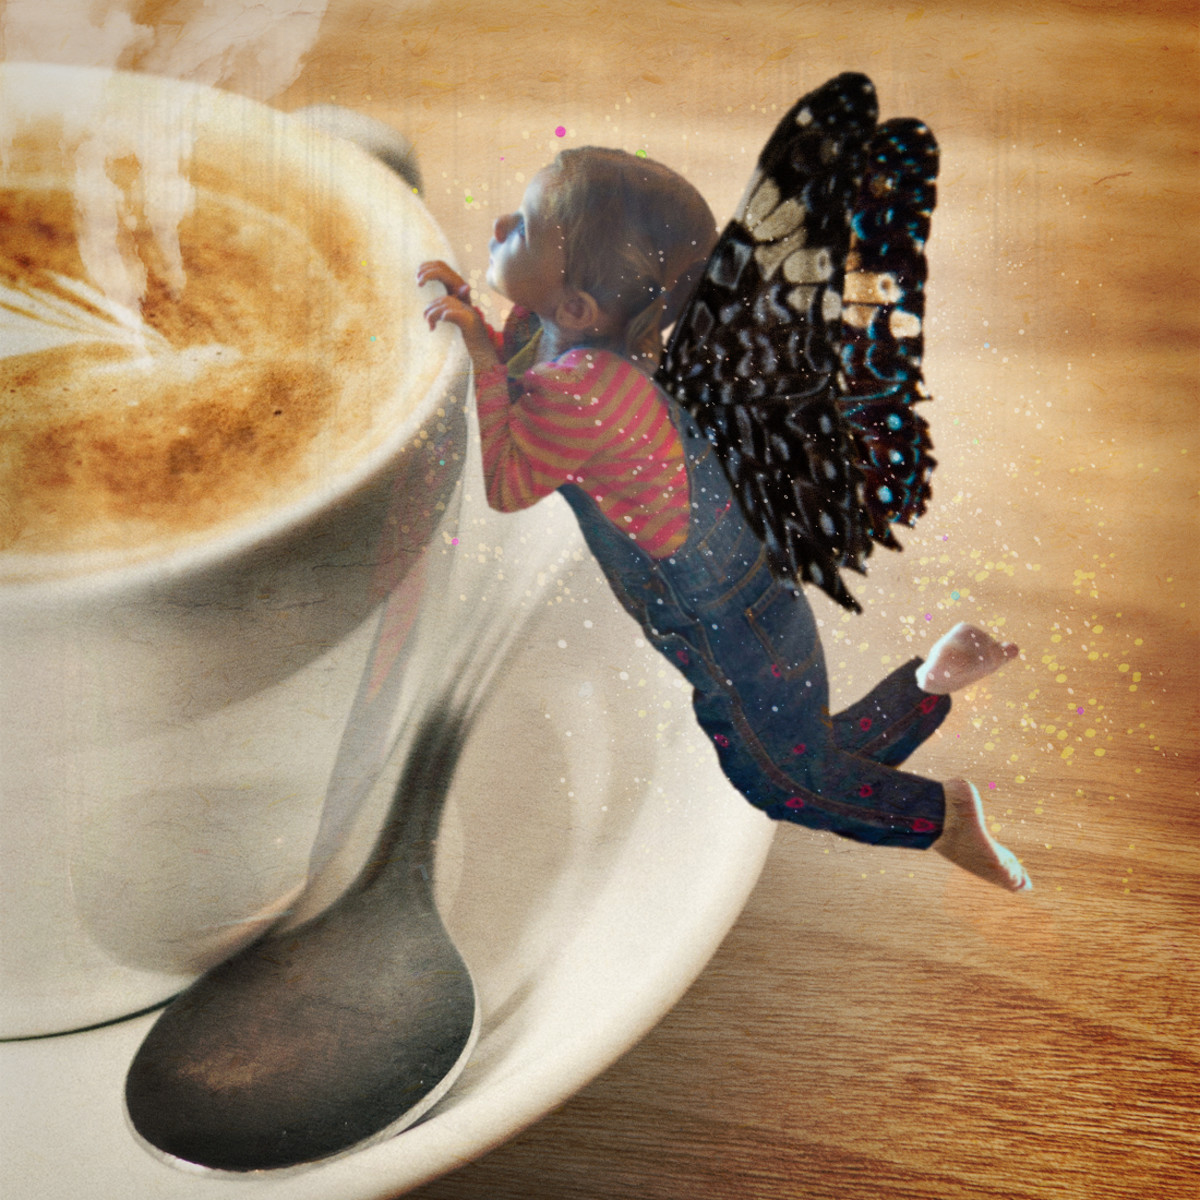 My granddaughter, Ivy, as a Coffee Fairy